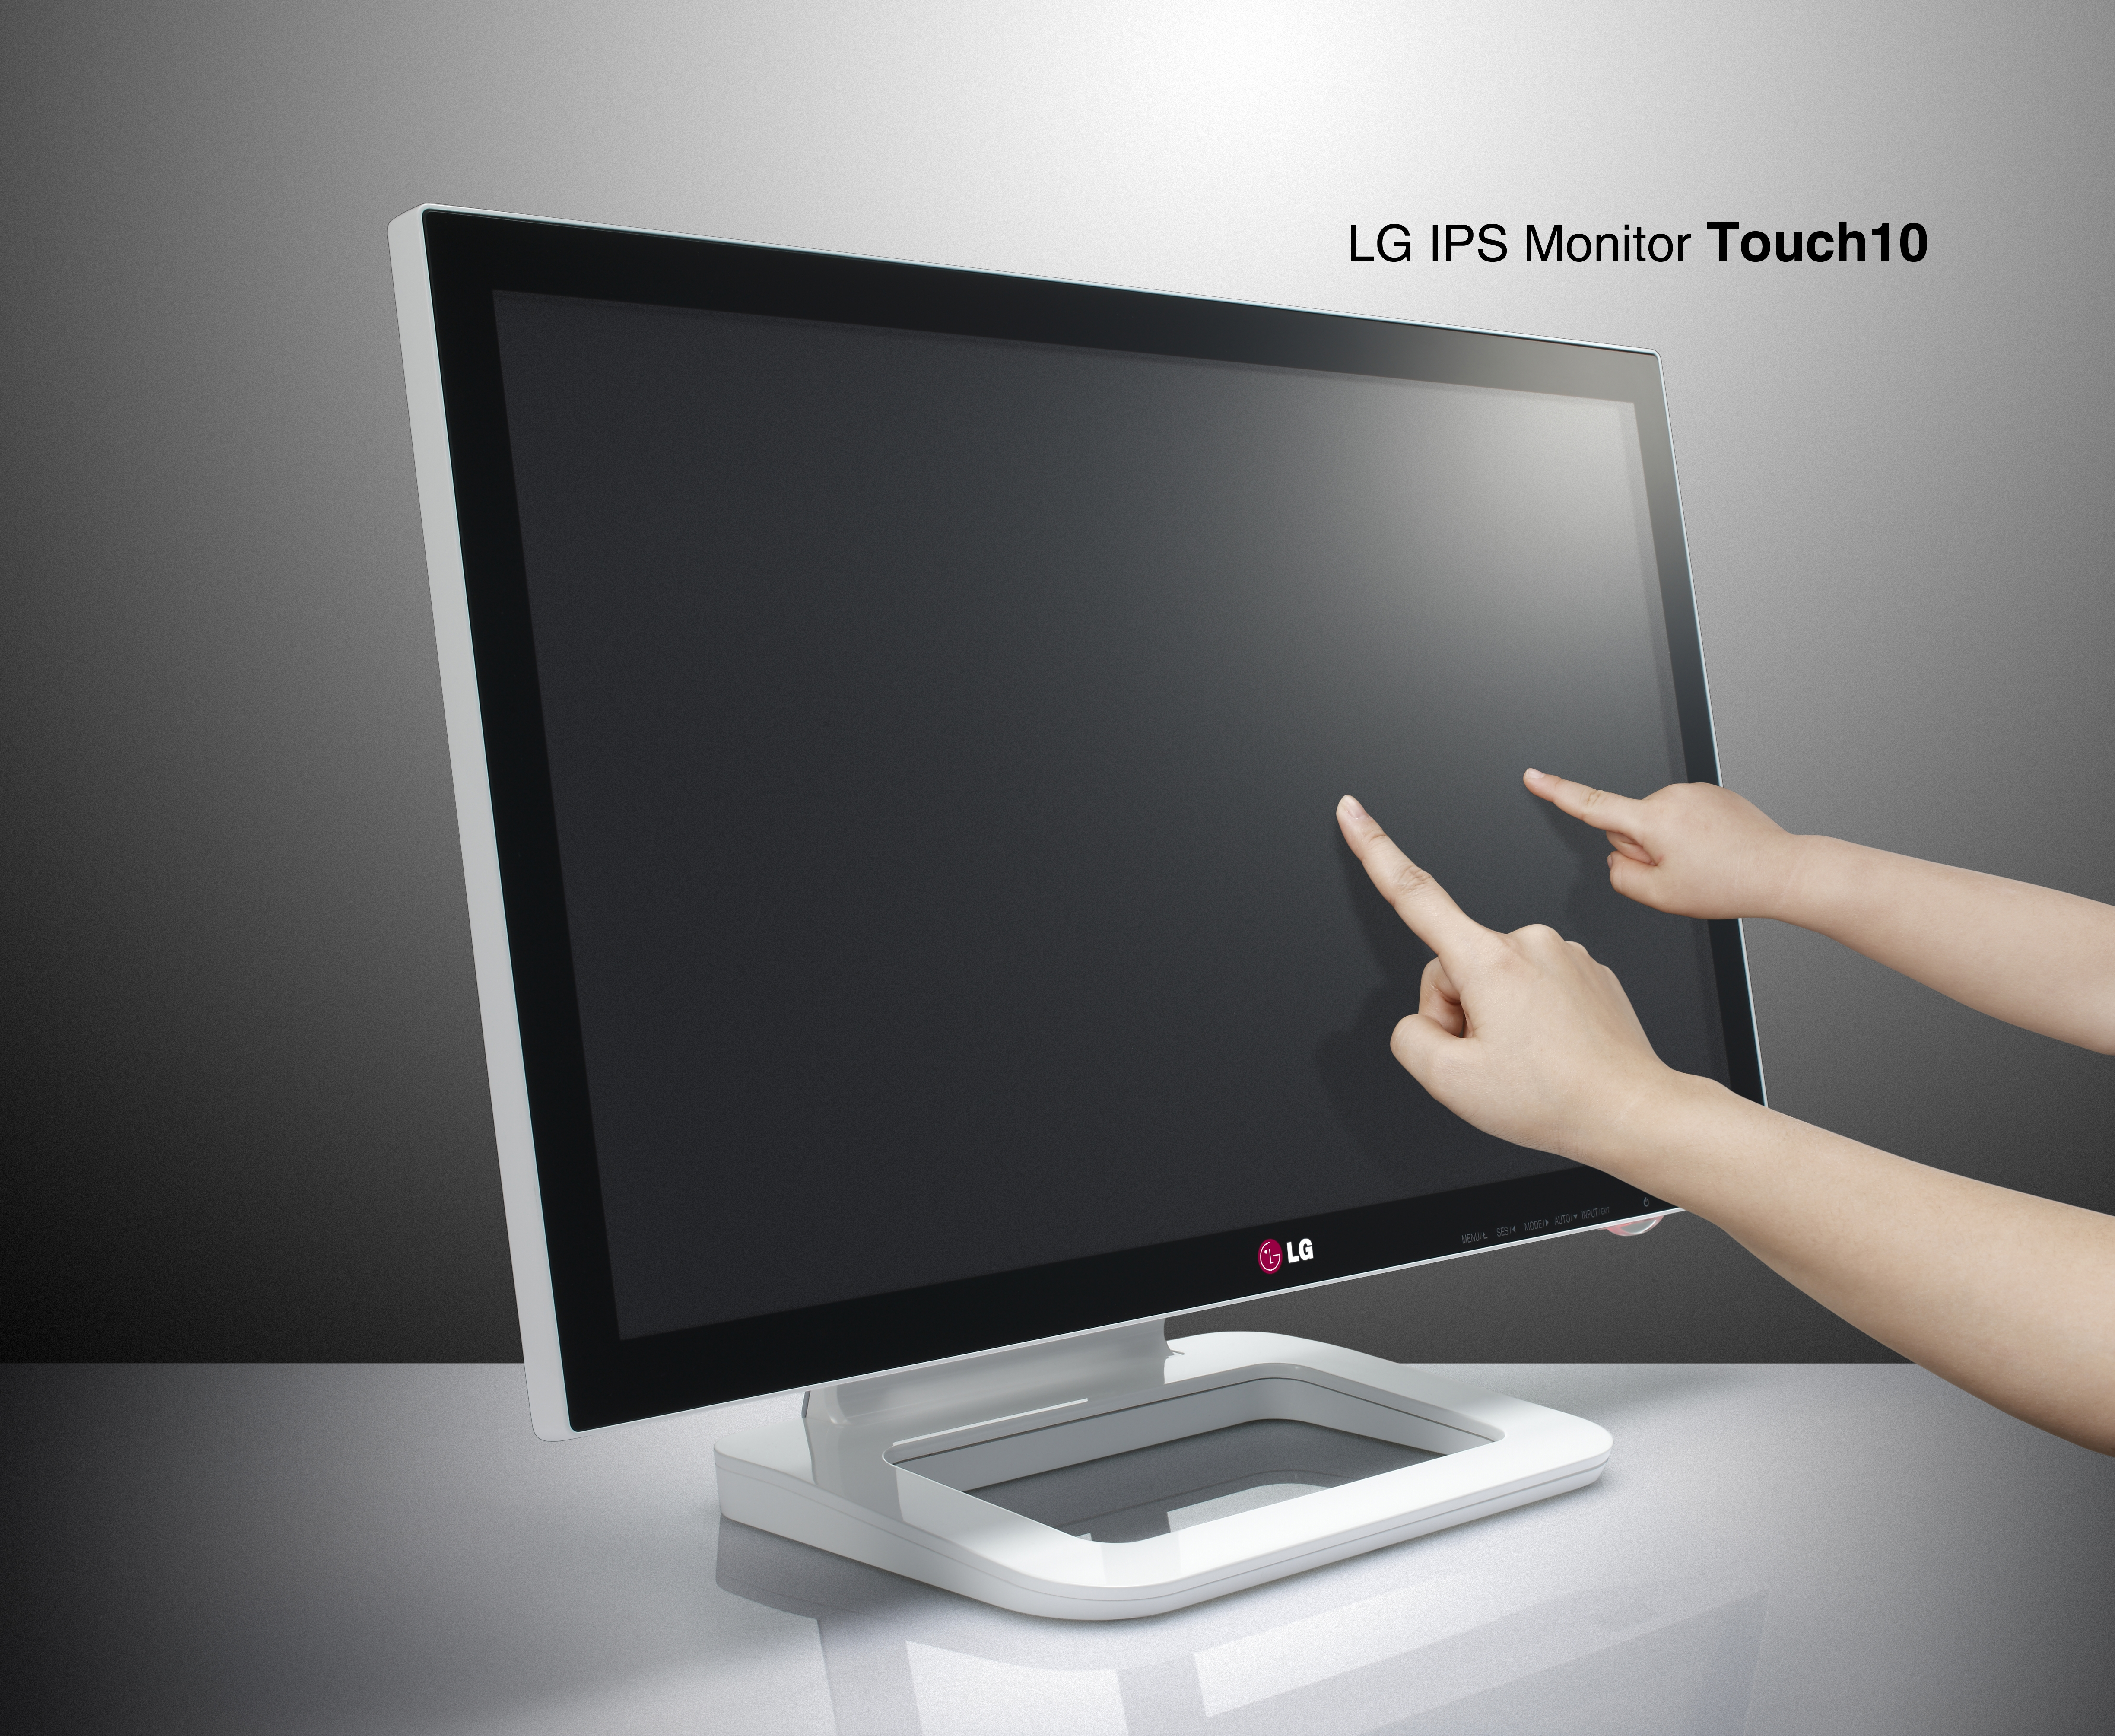 Two people touching LG IPS monitor Touch10's display with their index fingers